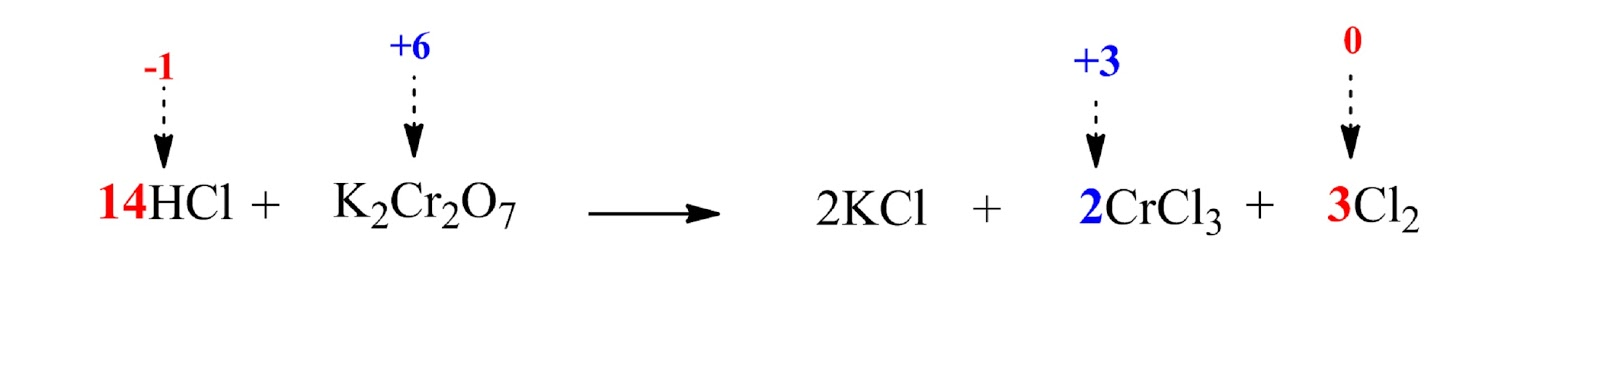 unbalanced reaction between HCl and K2Cr2O7 including oxidation number difference and coefficients and K coefficients and Cl coefficients